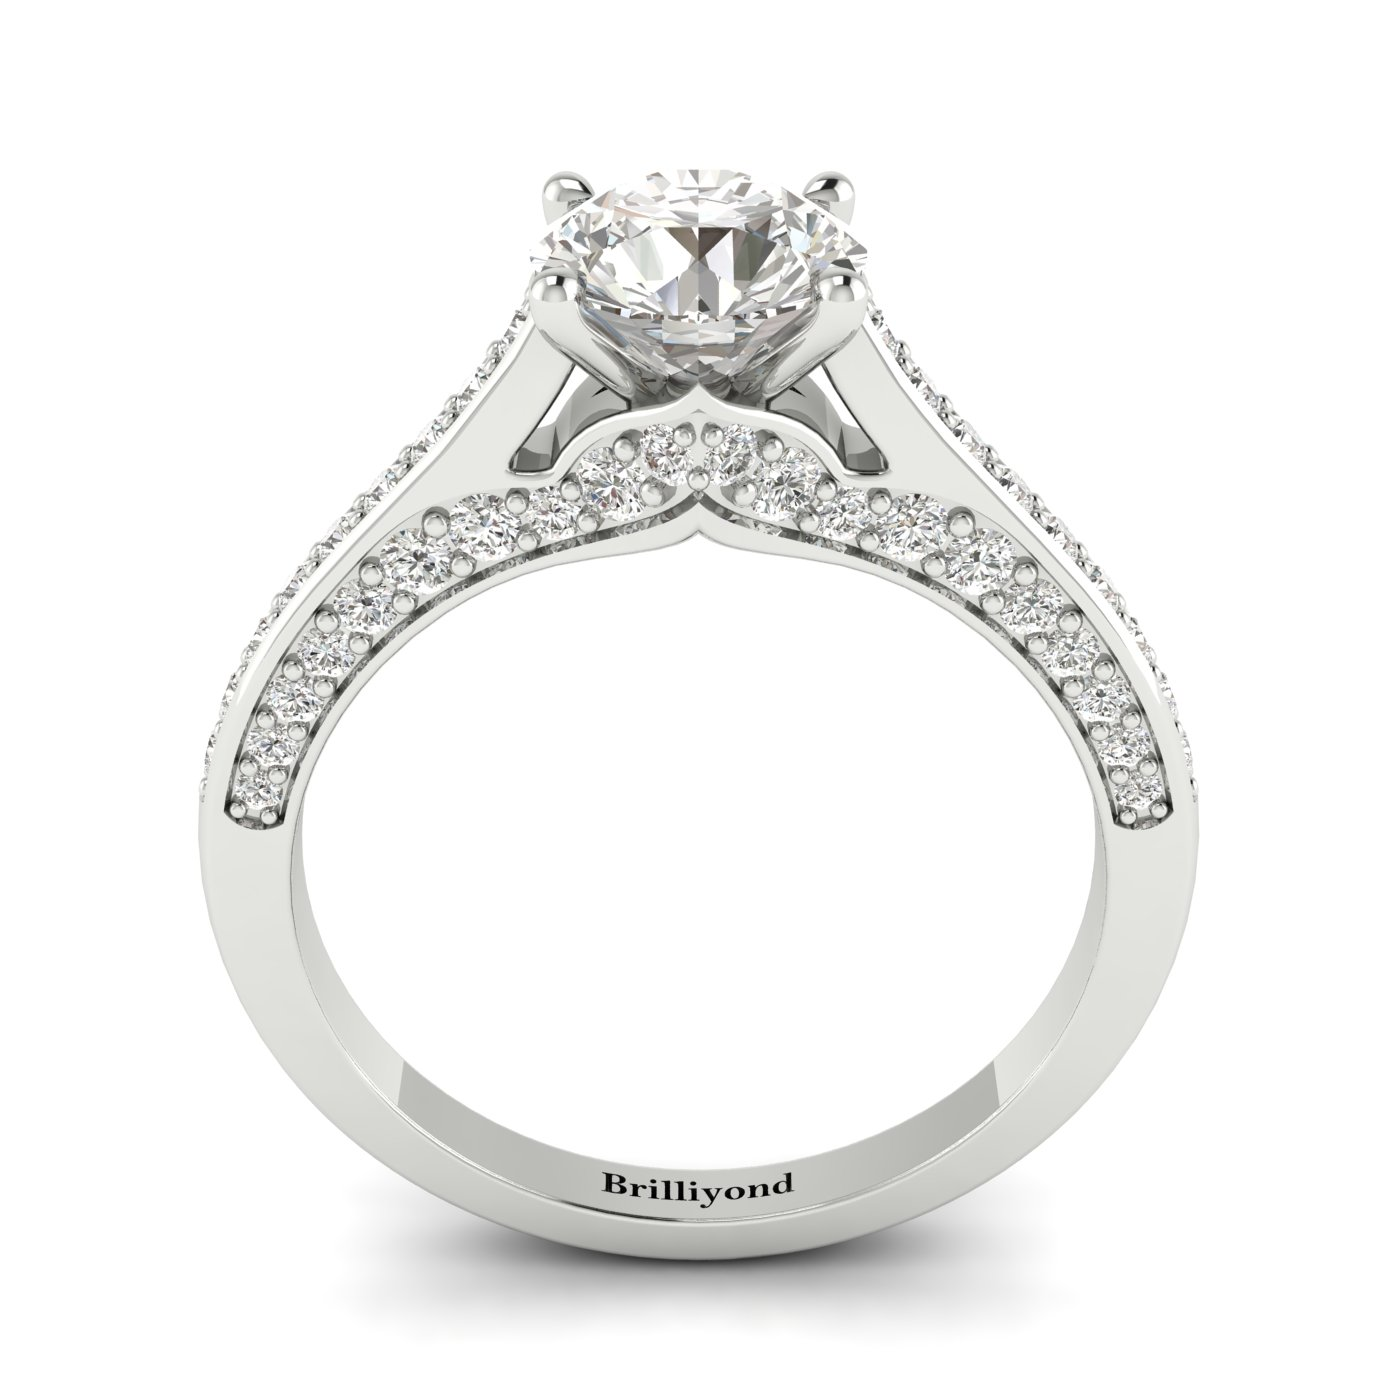 Diamond White Gold Brilliant Cut Engagement Ring Stargate_image1